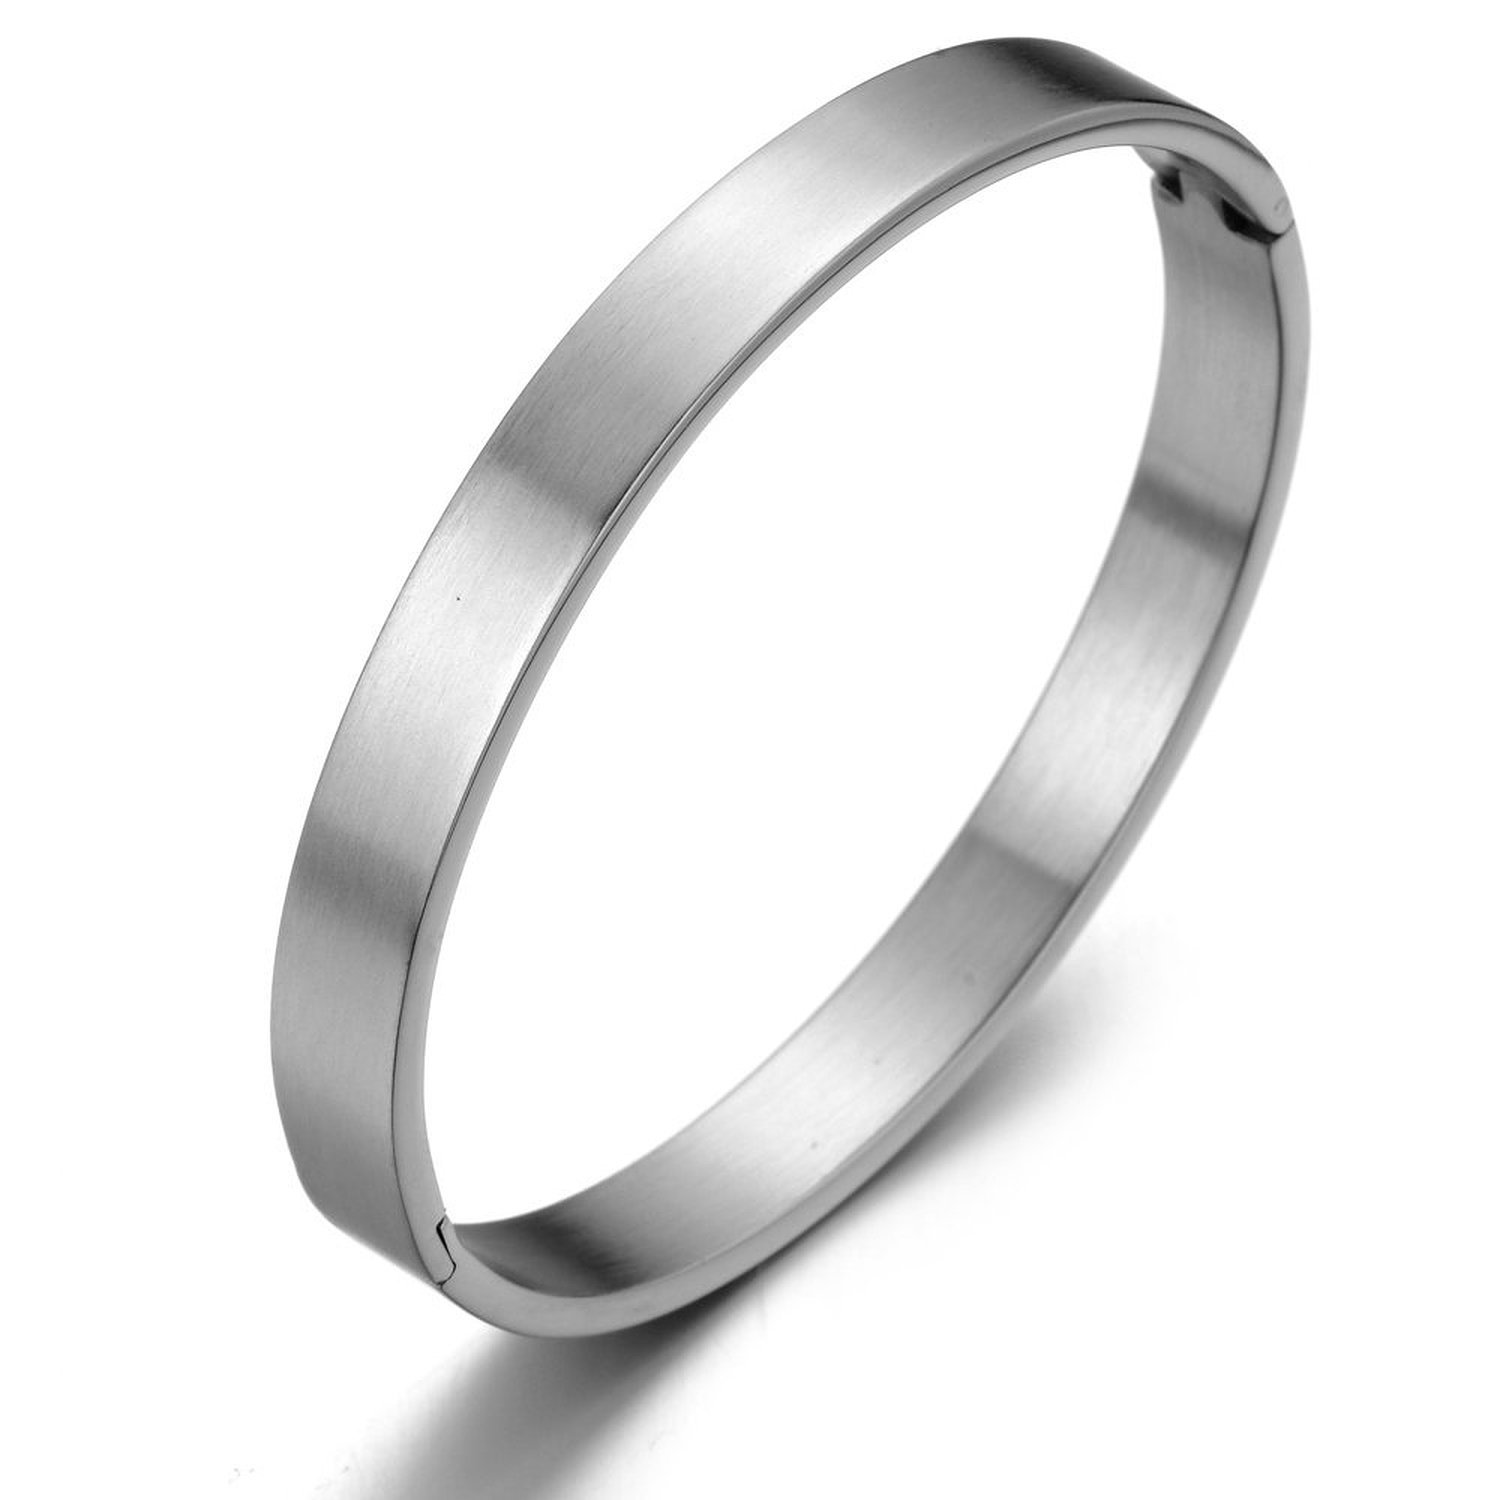 Classic Stainless Steel Bangle Bracelet for Men for Women Silver Color Satin COOLSTEELANDBEYOND MB-380-CA